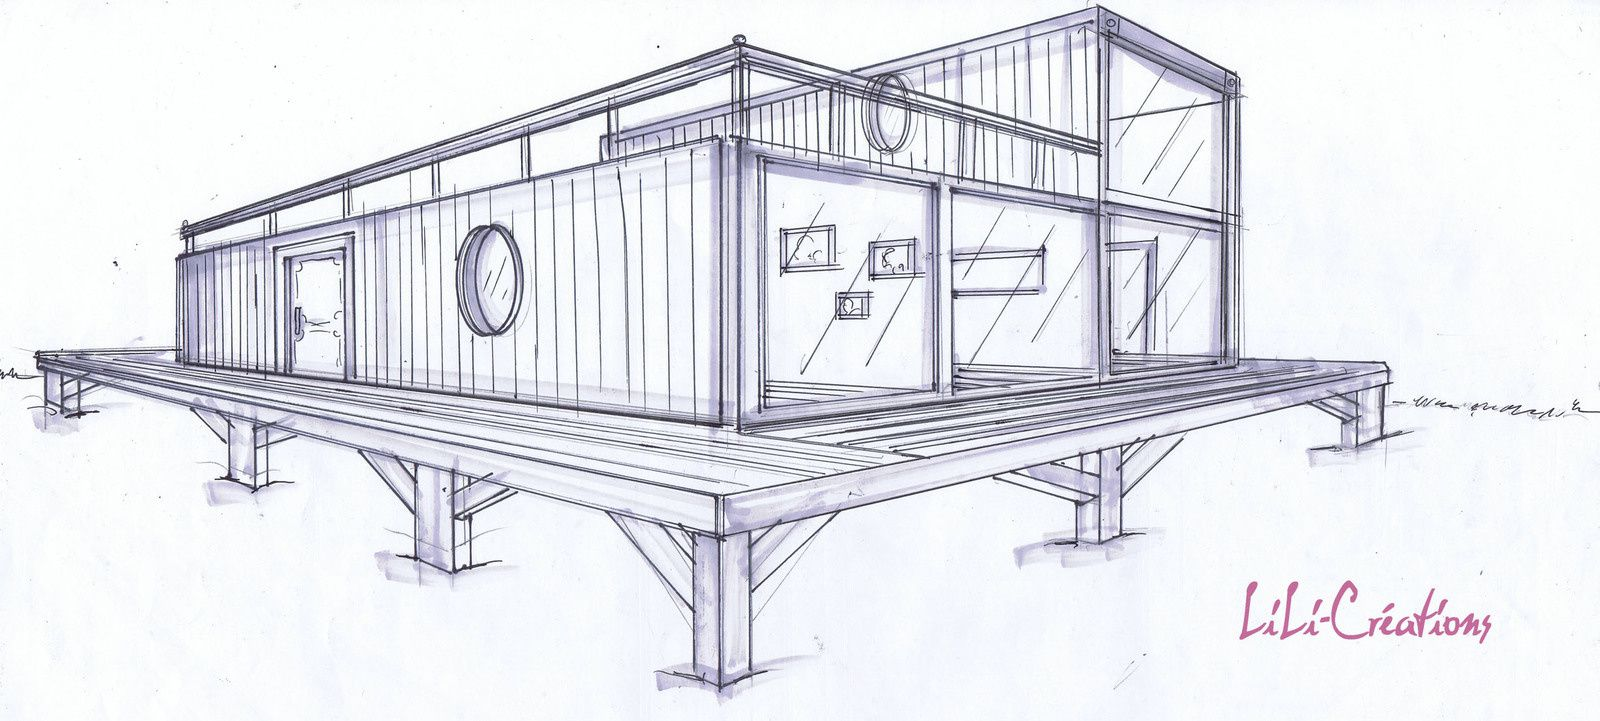 Construire sa maison container for Plan de maison container